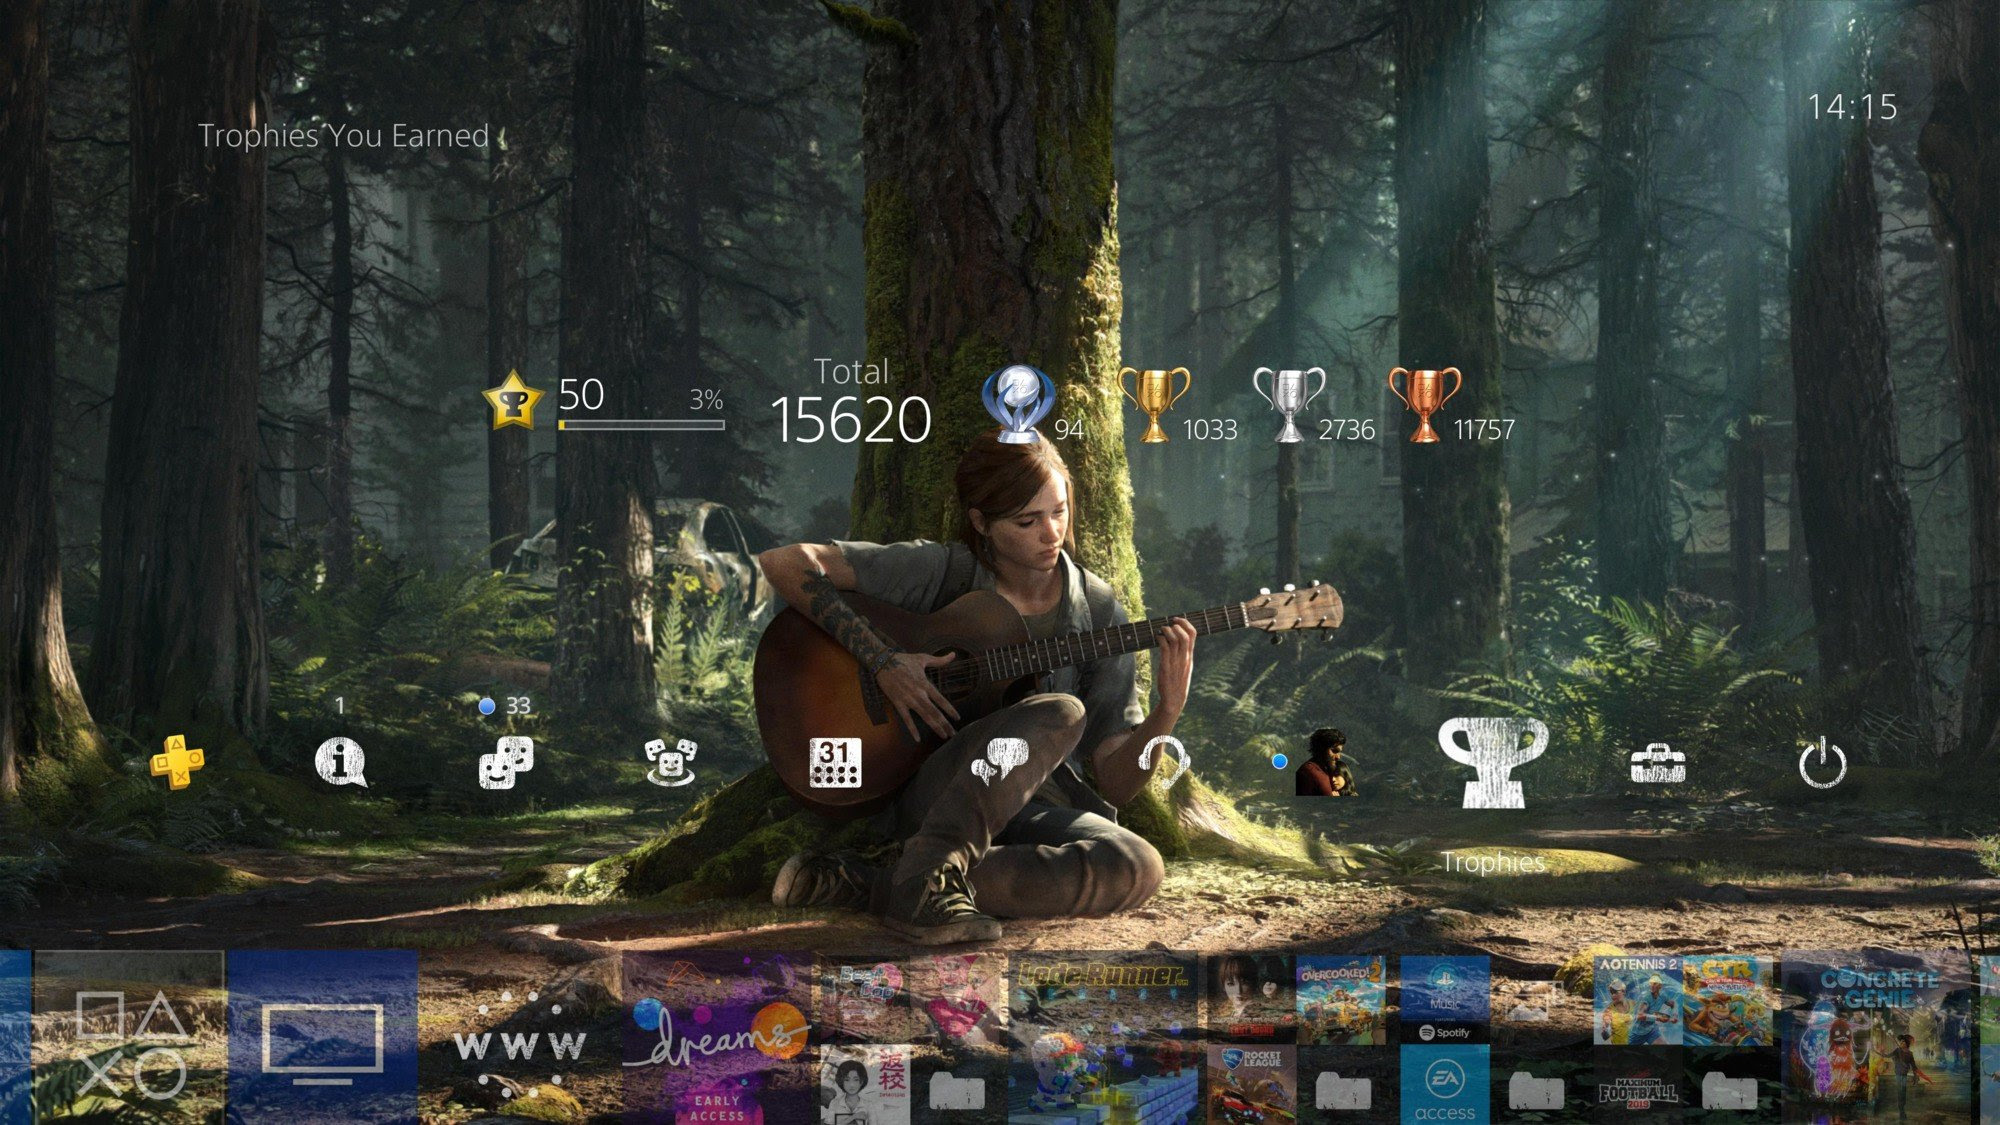 Amazing The Last Of Us 2 Ellie Ps4 Theme Changes From Day To Night